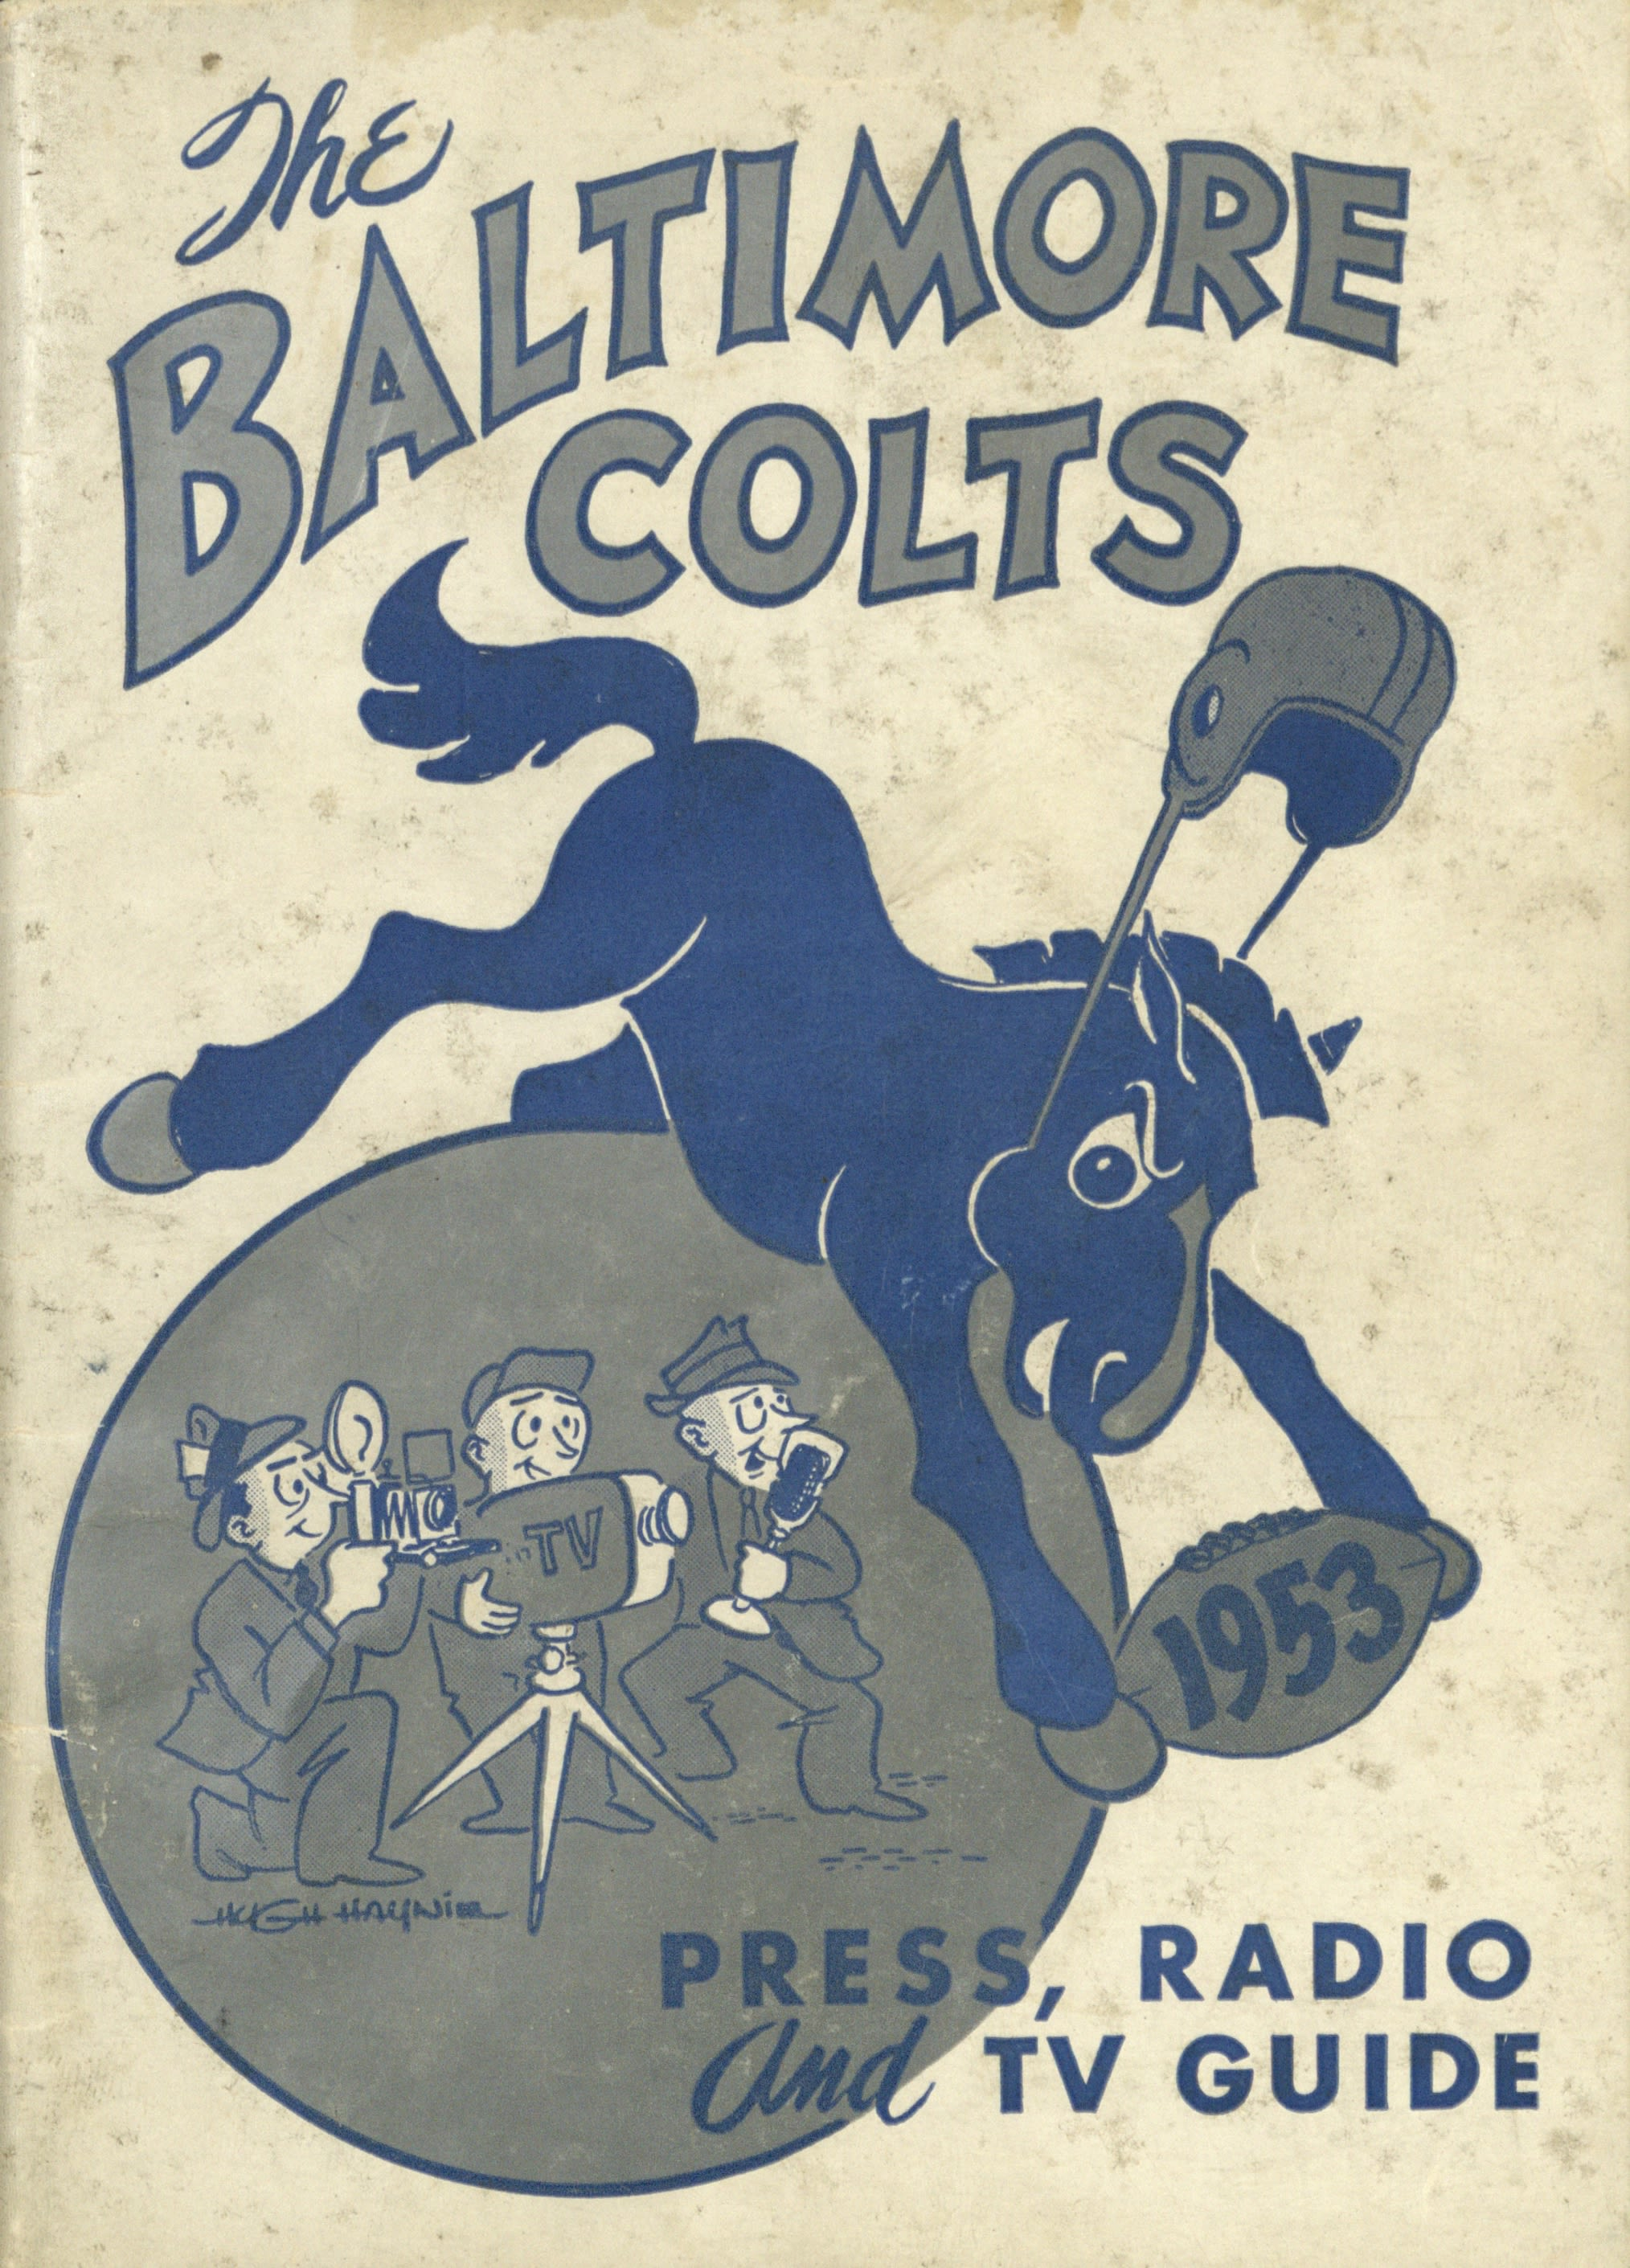 COLTS_1953_Cover